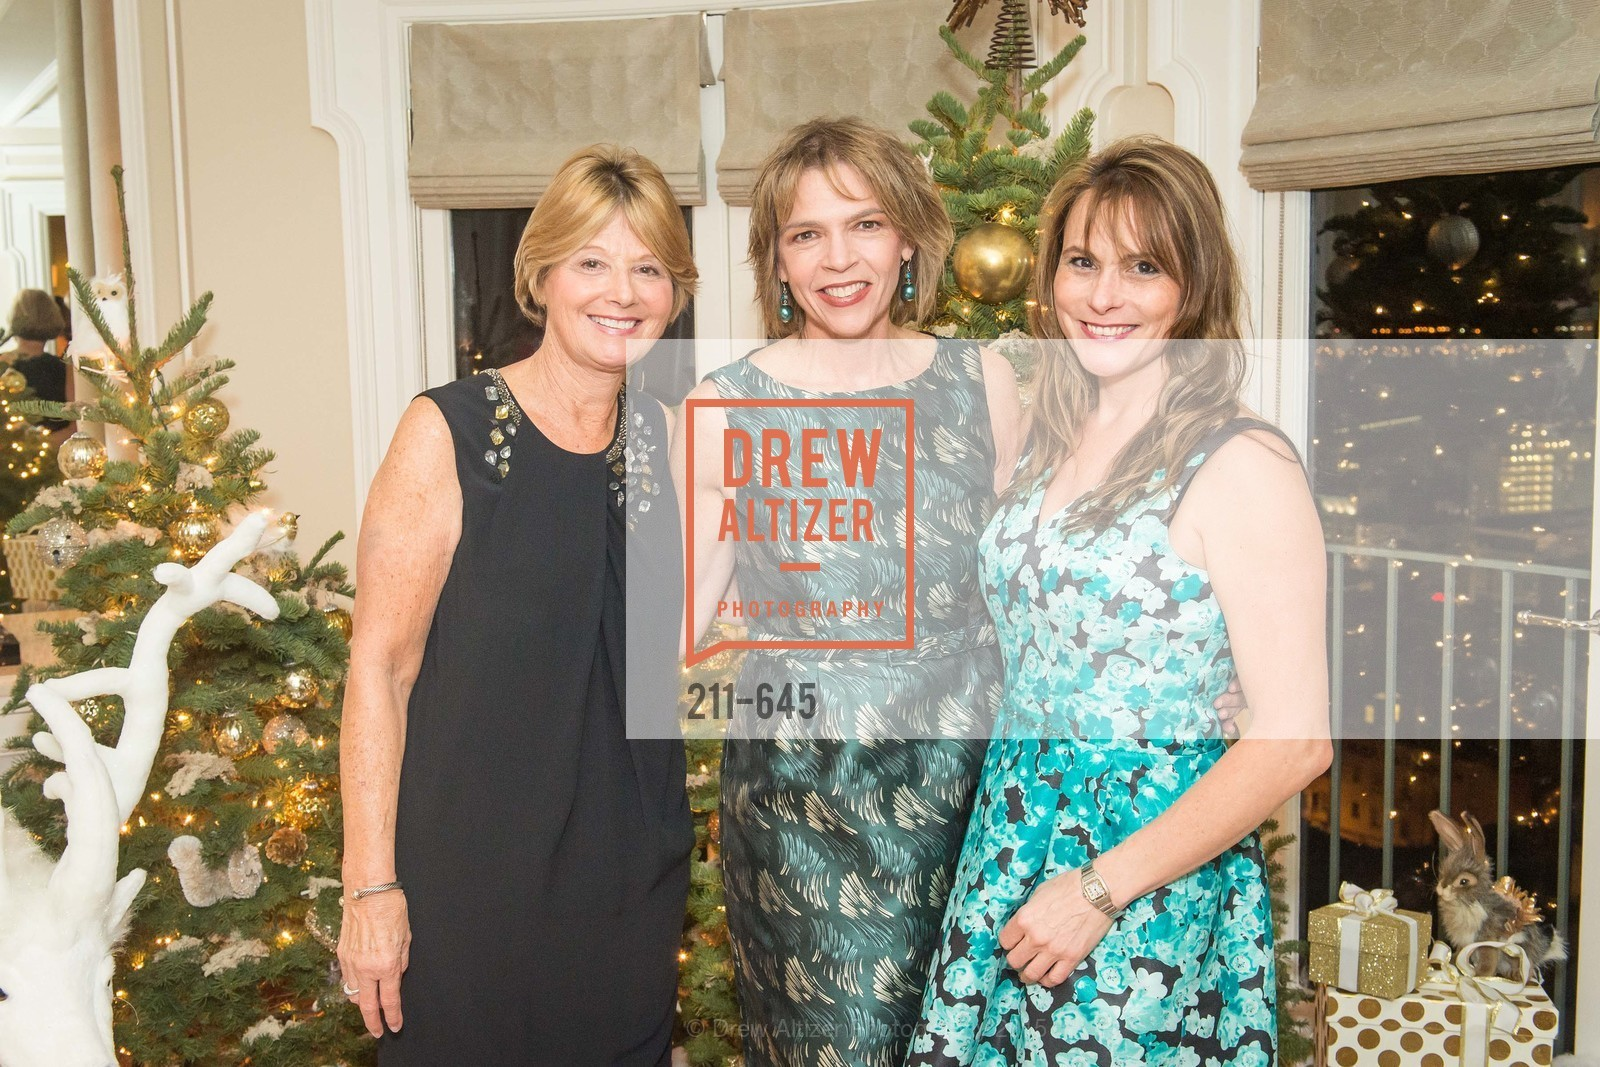 Debbie Rivard, Beth Schnitzer, Teresa Rodriguez, Atherton Holiday Party, Private Residence, December 12th, 2015,Drew Altizer, Drew Altizer Photography, full-service event agency, private events, San Francisco photographer, photographer California